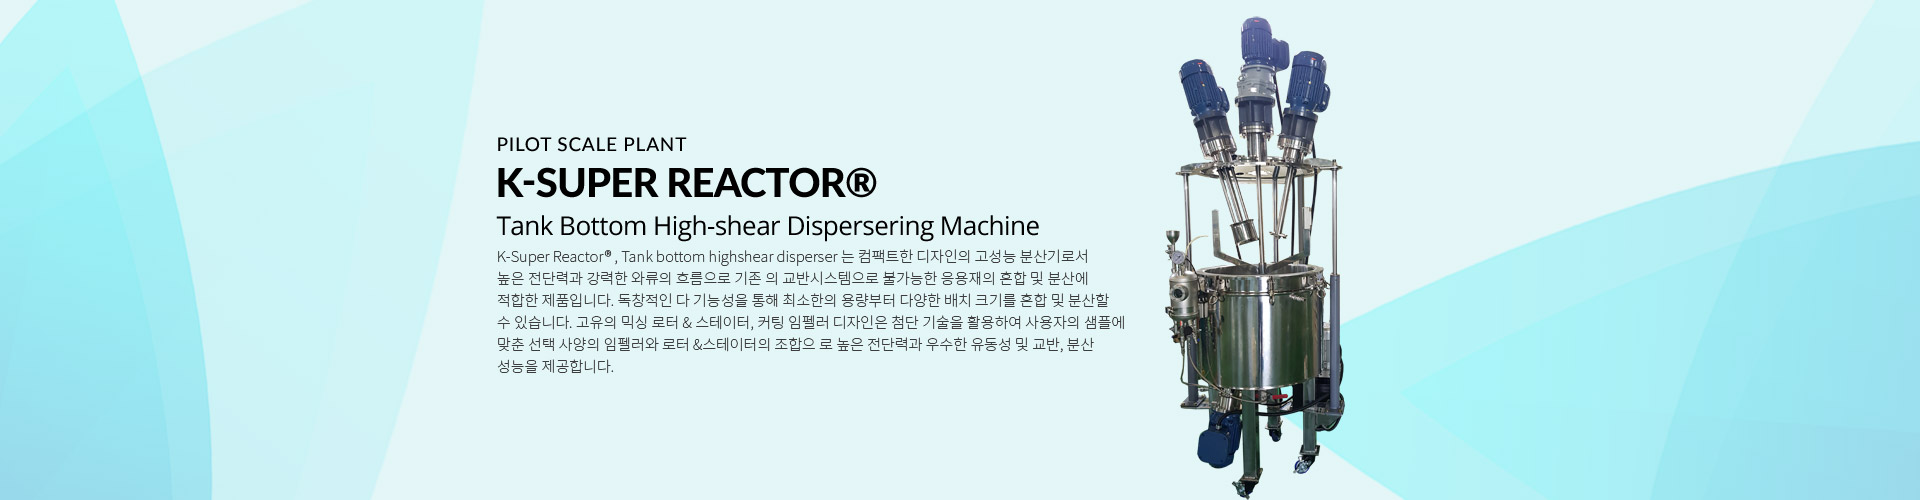 K-Super Reactor® ,Tank Bottom High-shear Dispersering Machine